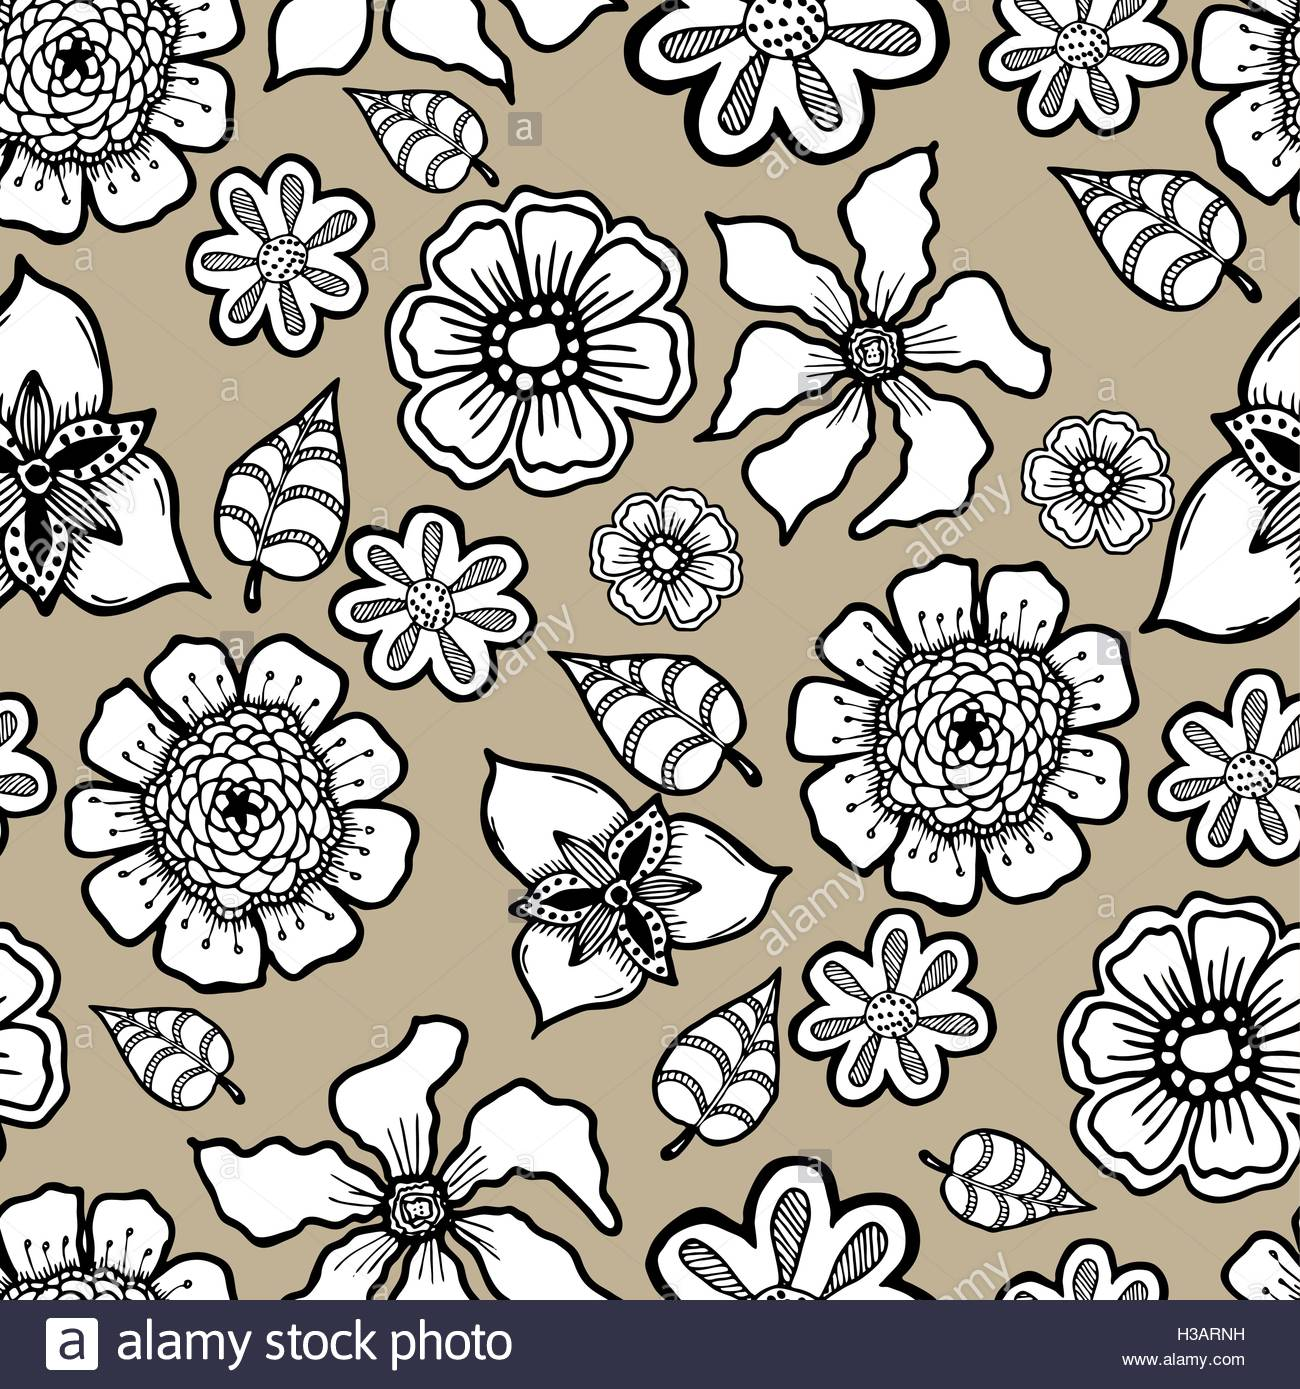 Ornate floral pattern with flowers Doodle sharpie background 1300x1389